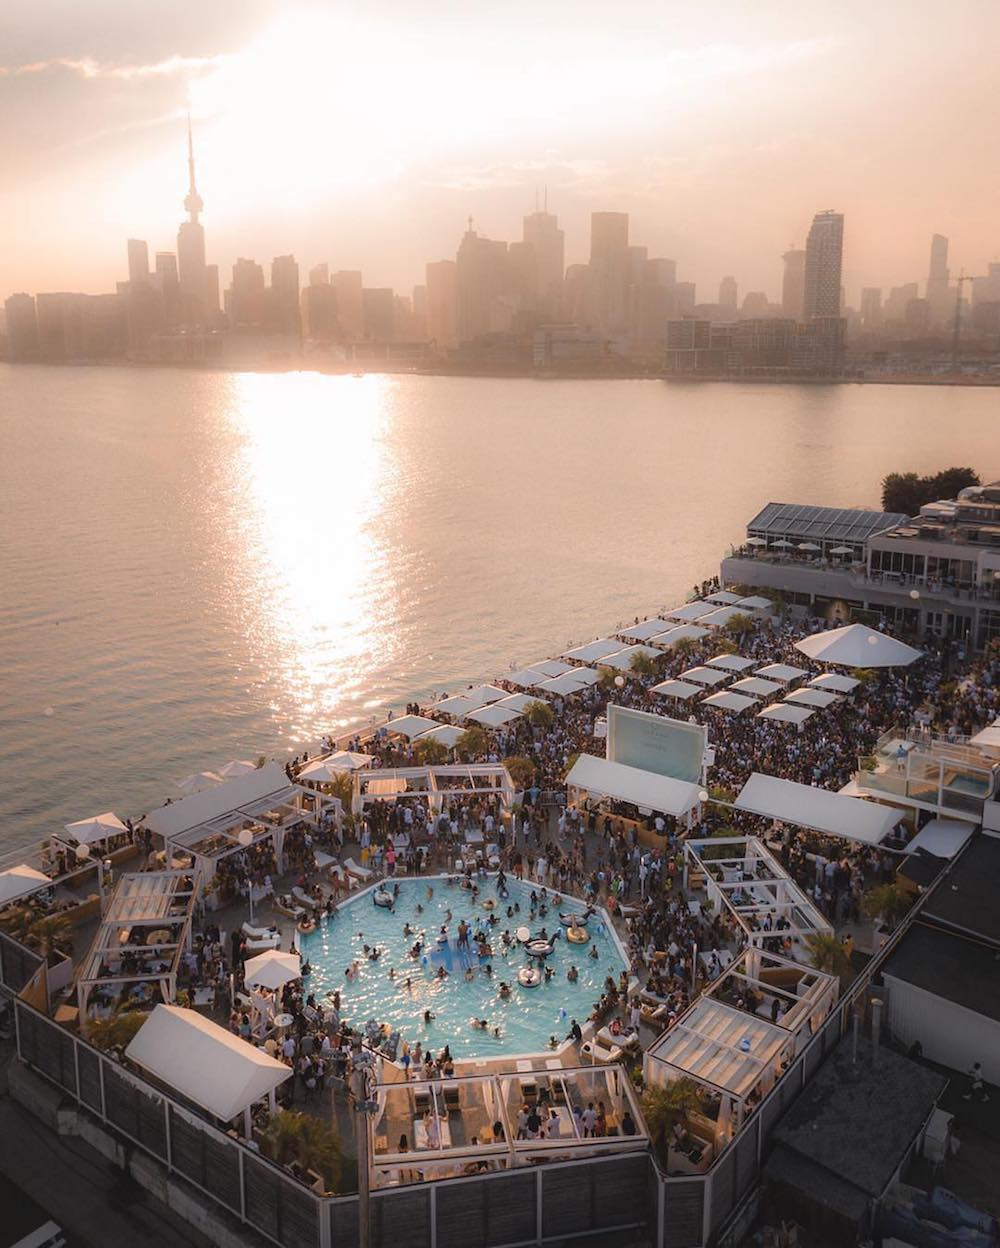 The Best Waterfront Patios To Visit In Toronto This Summer